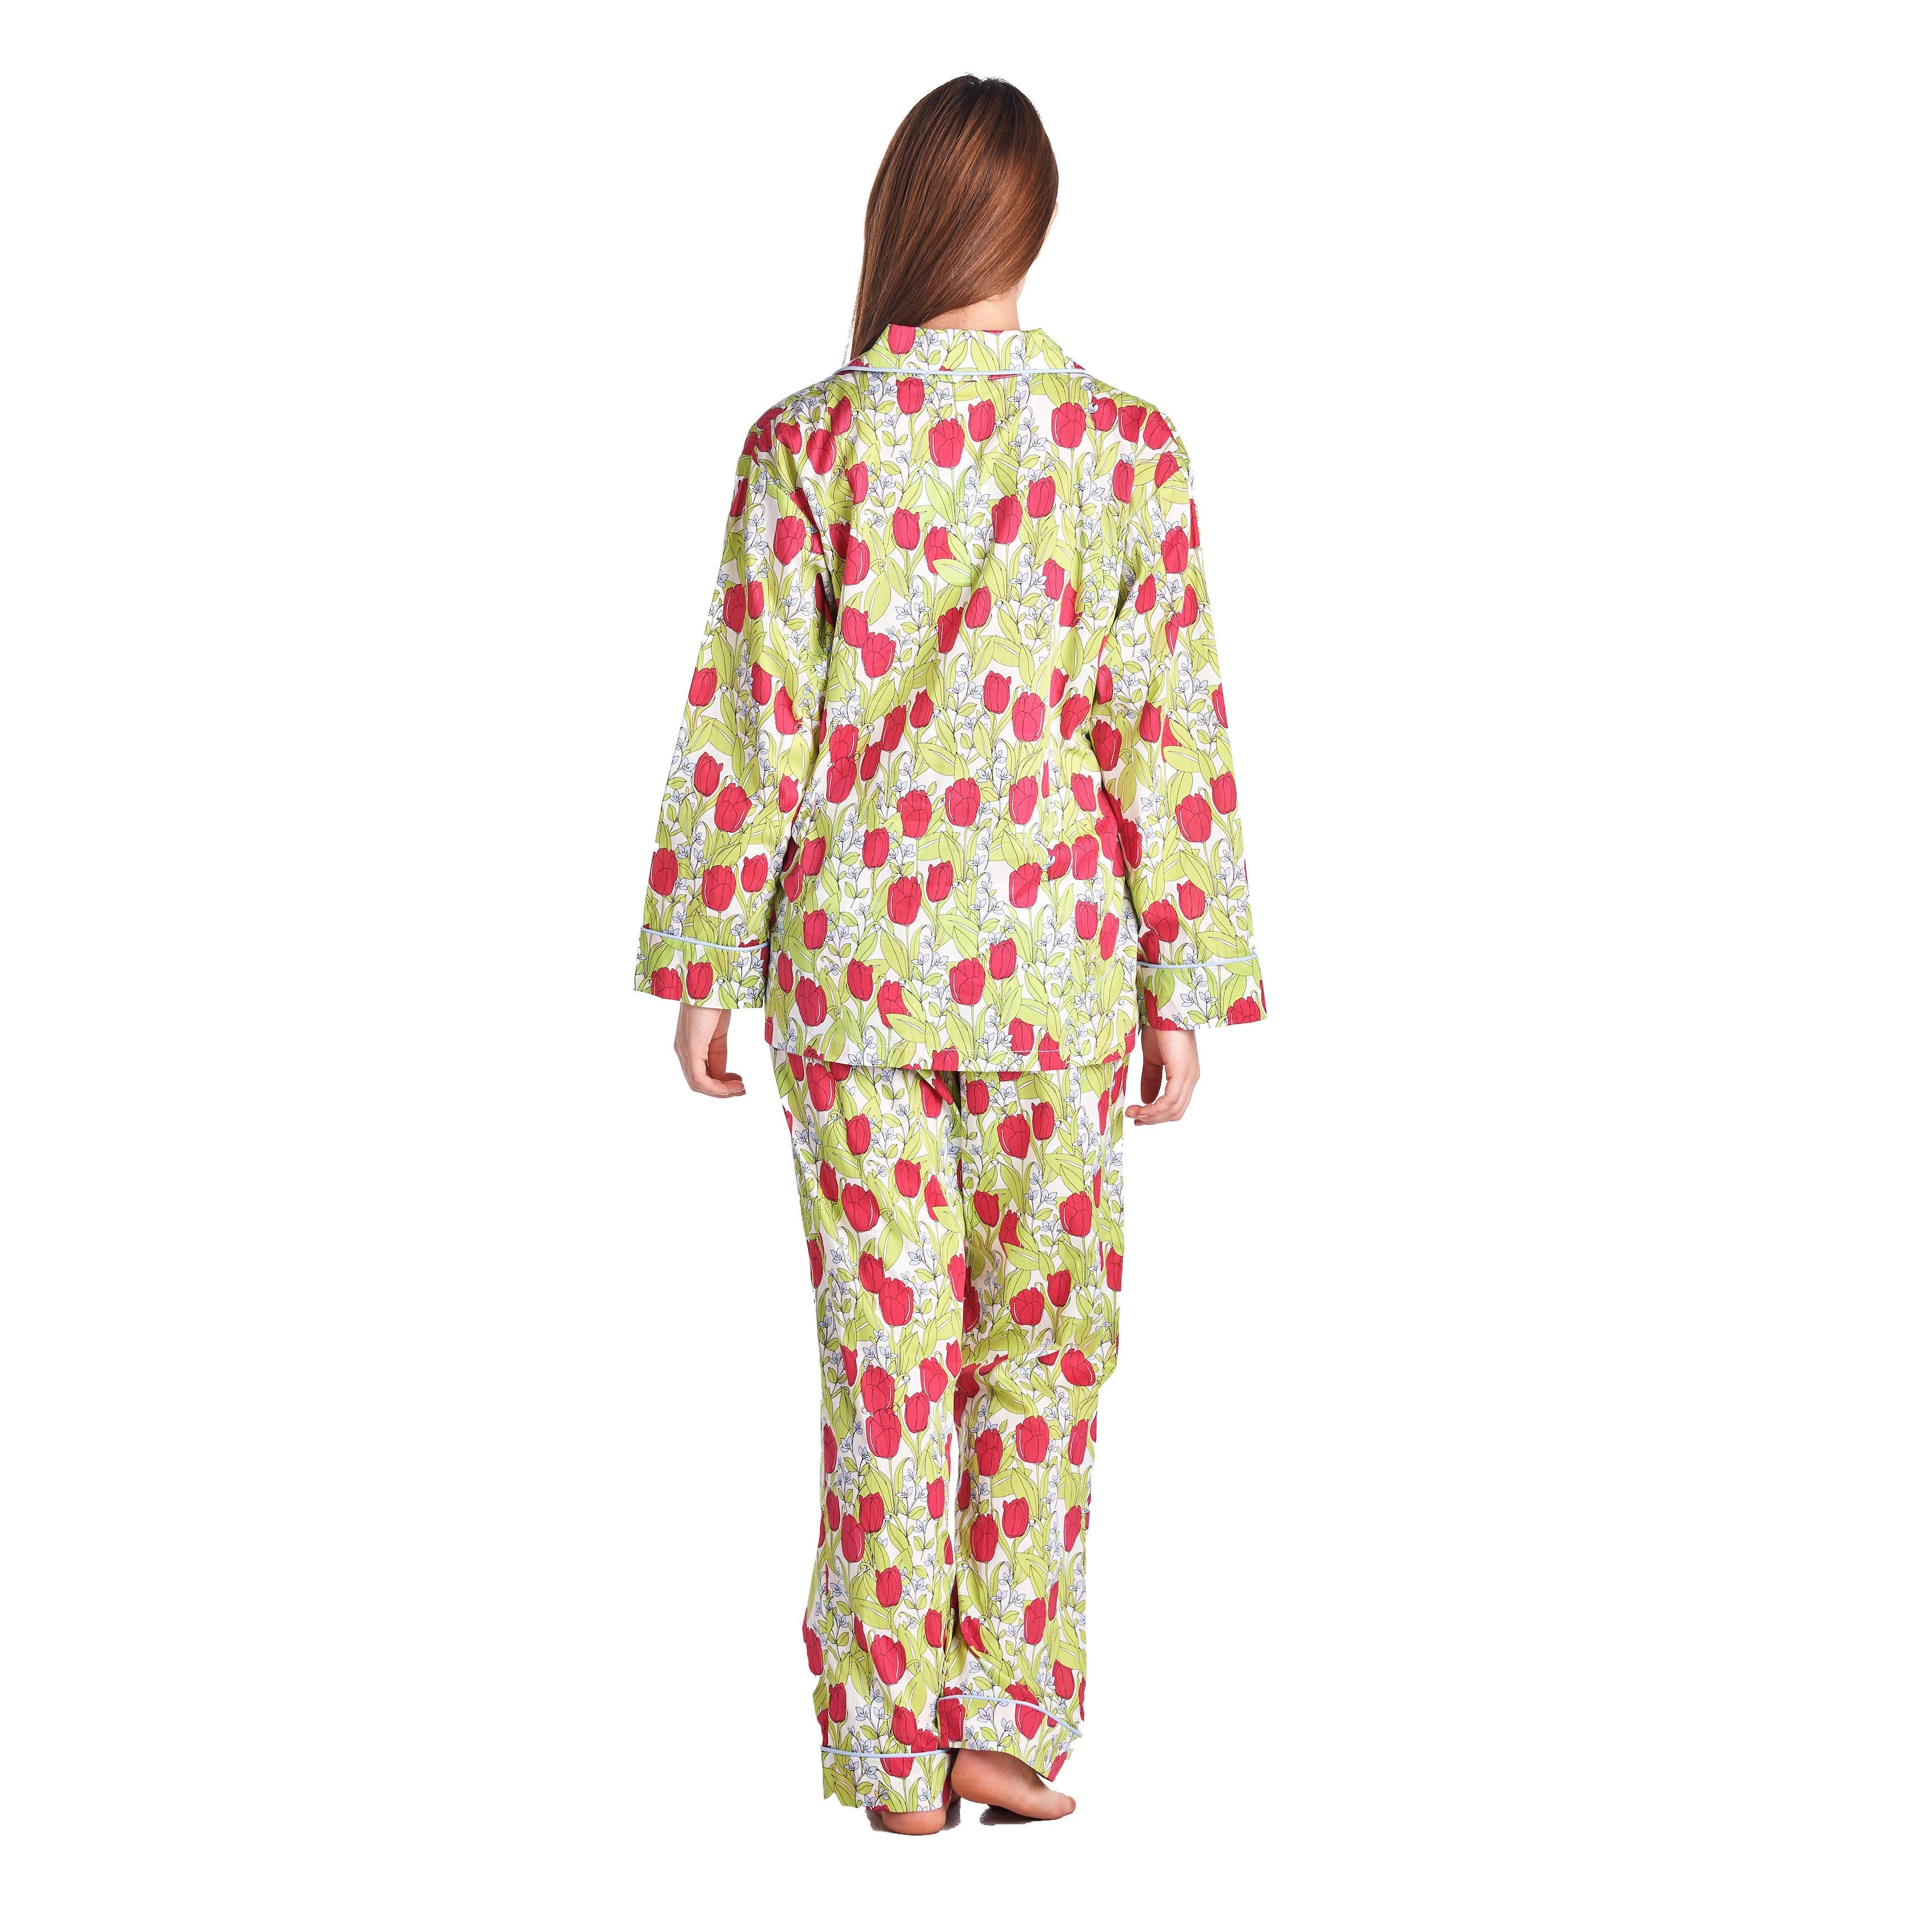 72fd53763 Shop Bedhead Pajamas Women's Multicolor Cotton Classic Long-sleeve Pajama  Set - Free Shipping Today - Overstock - 13330402